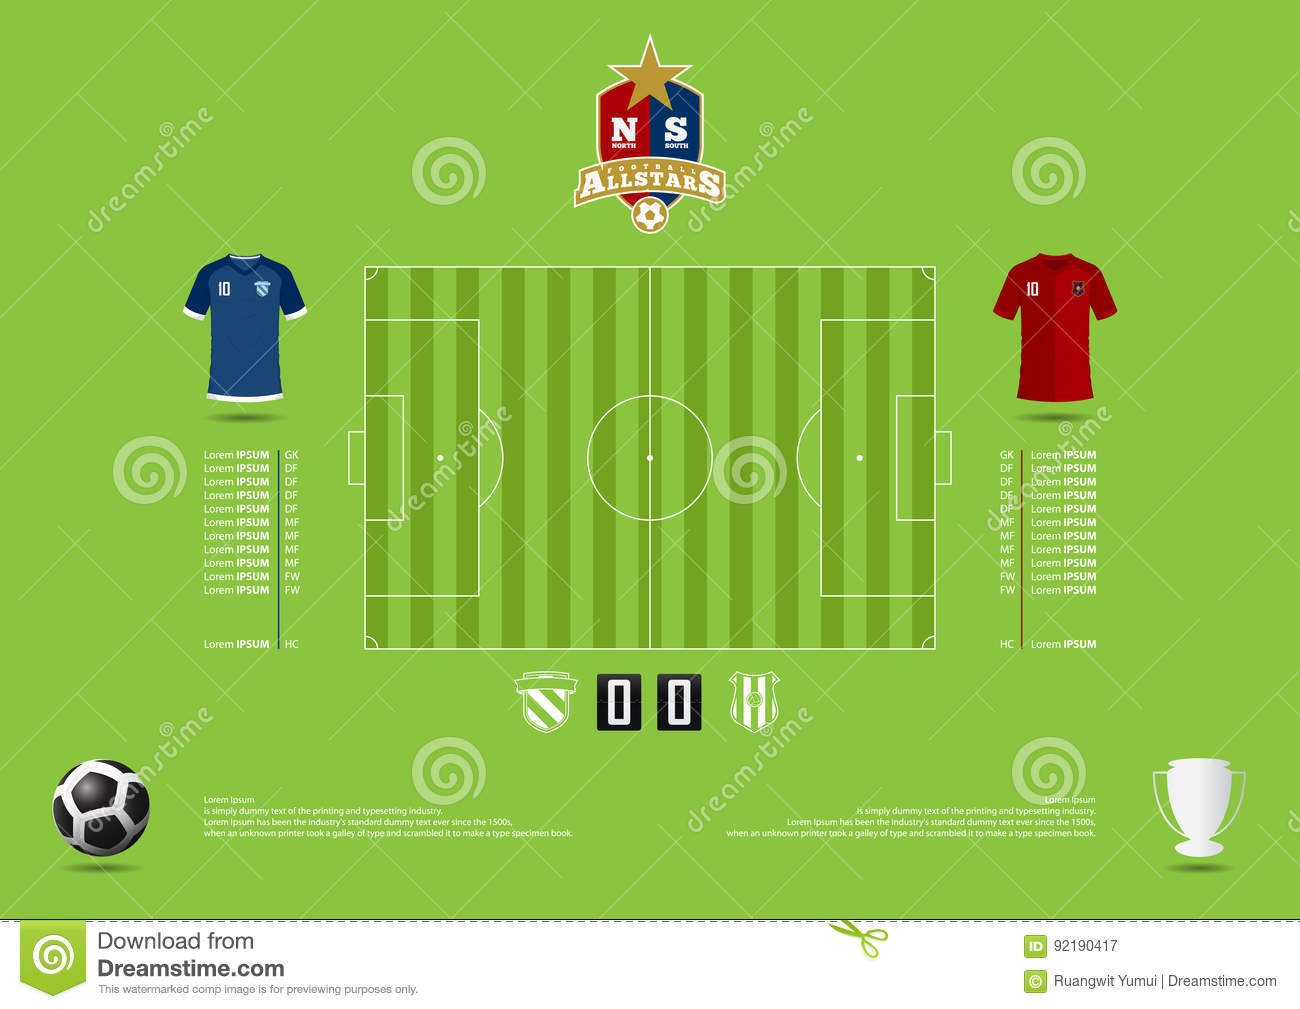 Football or soccer match statics infographic. Football formation tactic. Football logo. Flat design. Vector